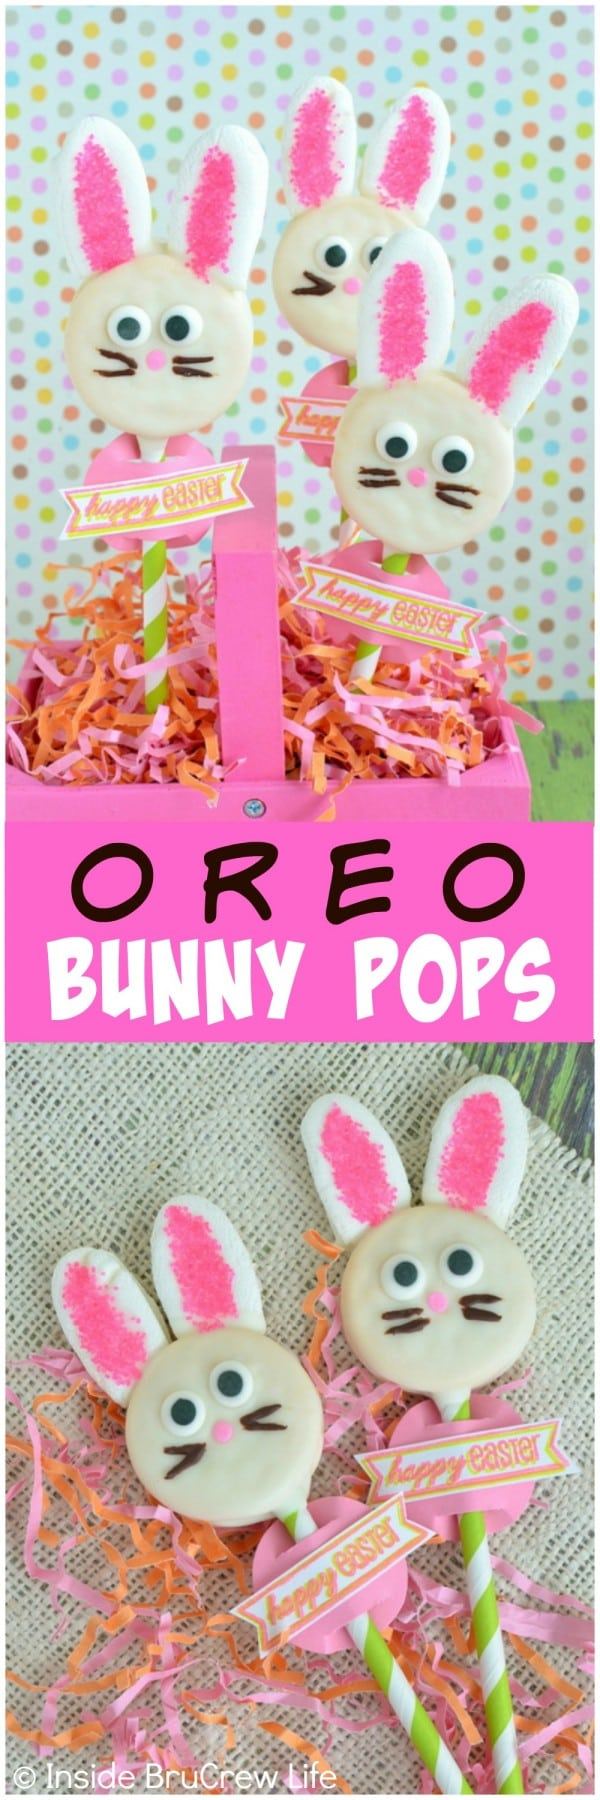 Oreo Bunny Pops - chocolate covered cookies with marshmallow ears. These are cute for an Easter centerpiece.